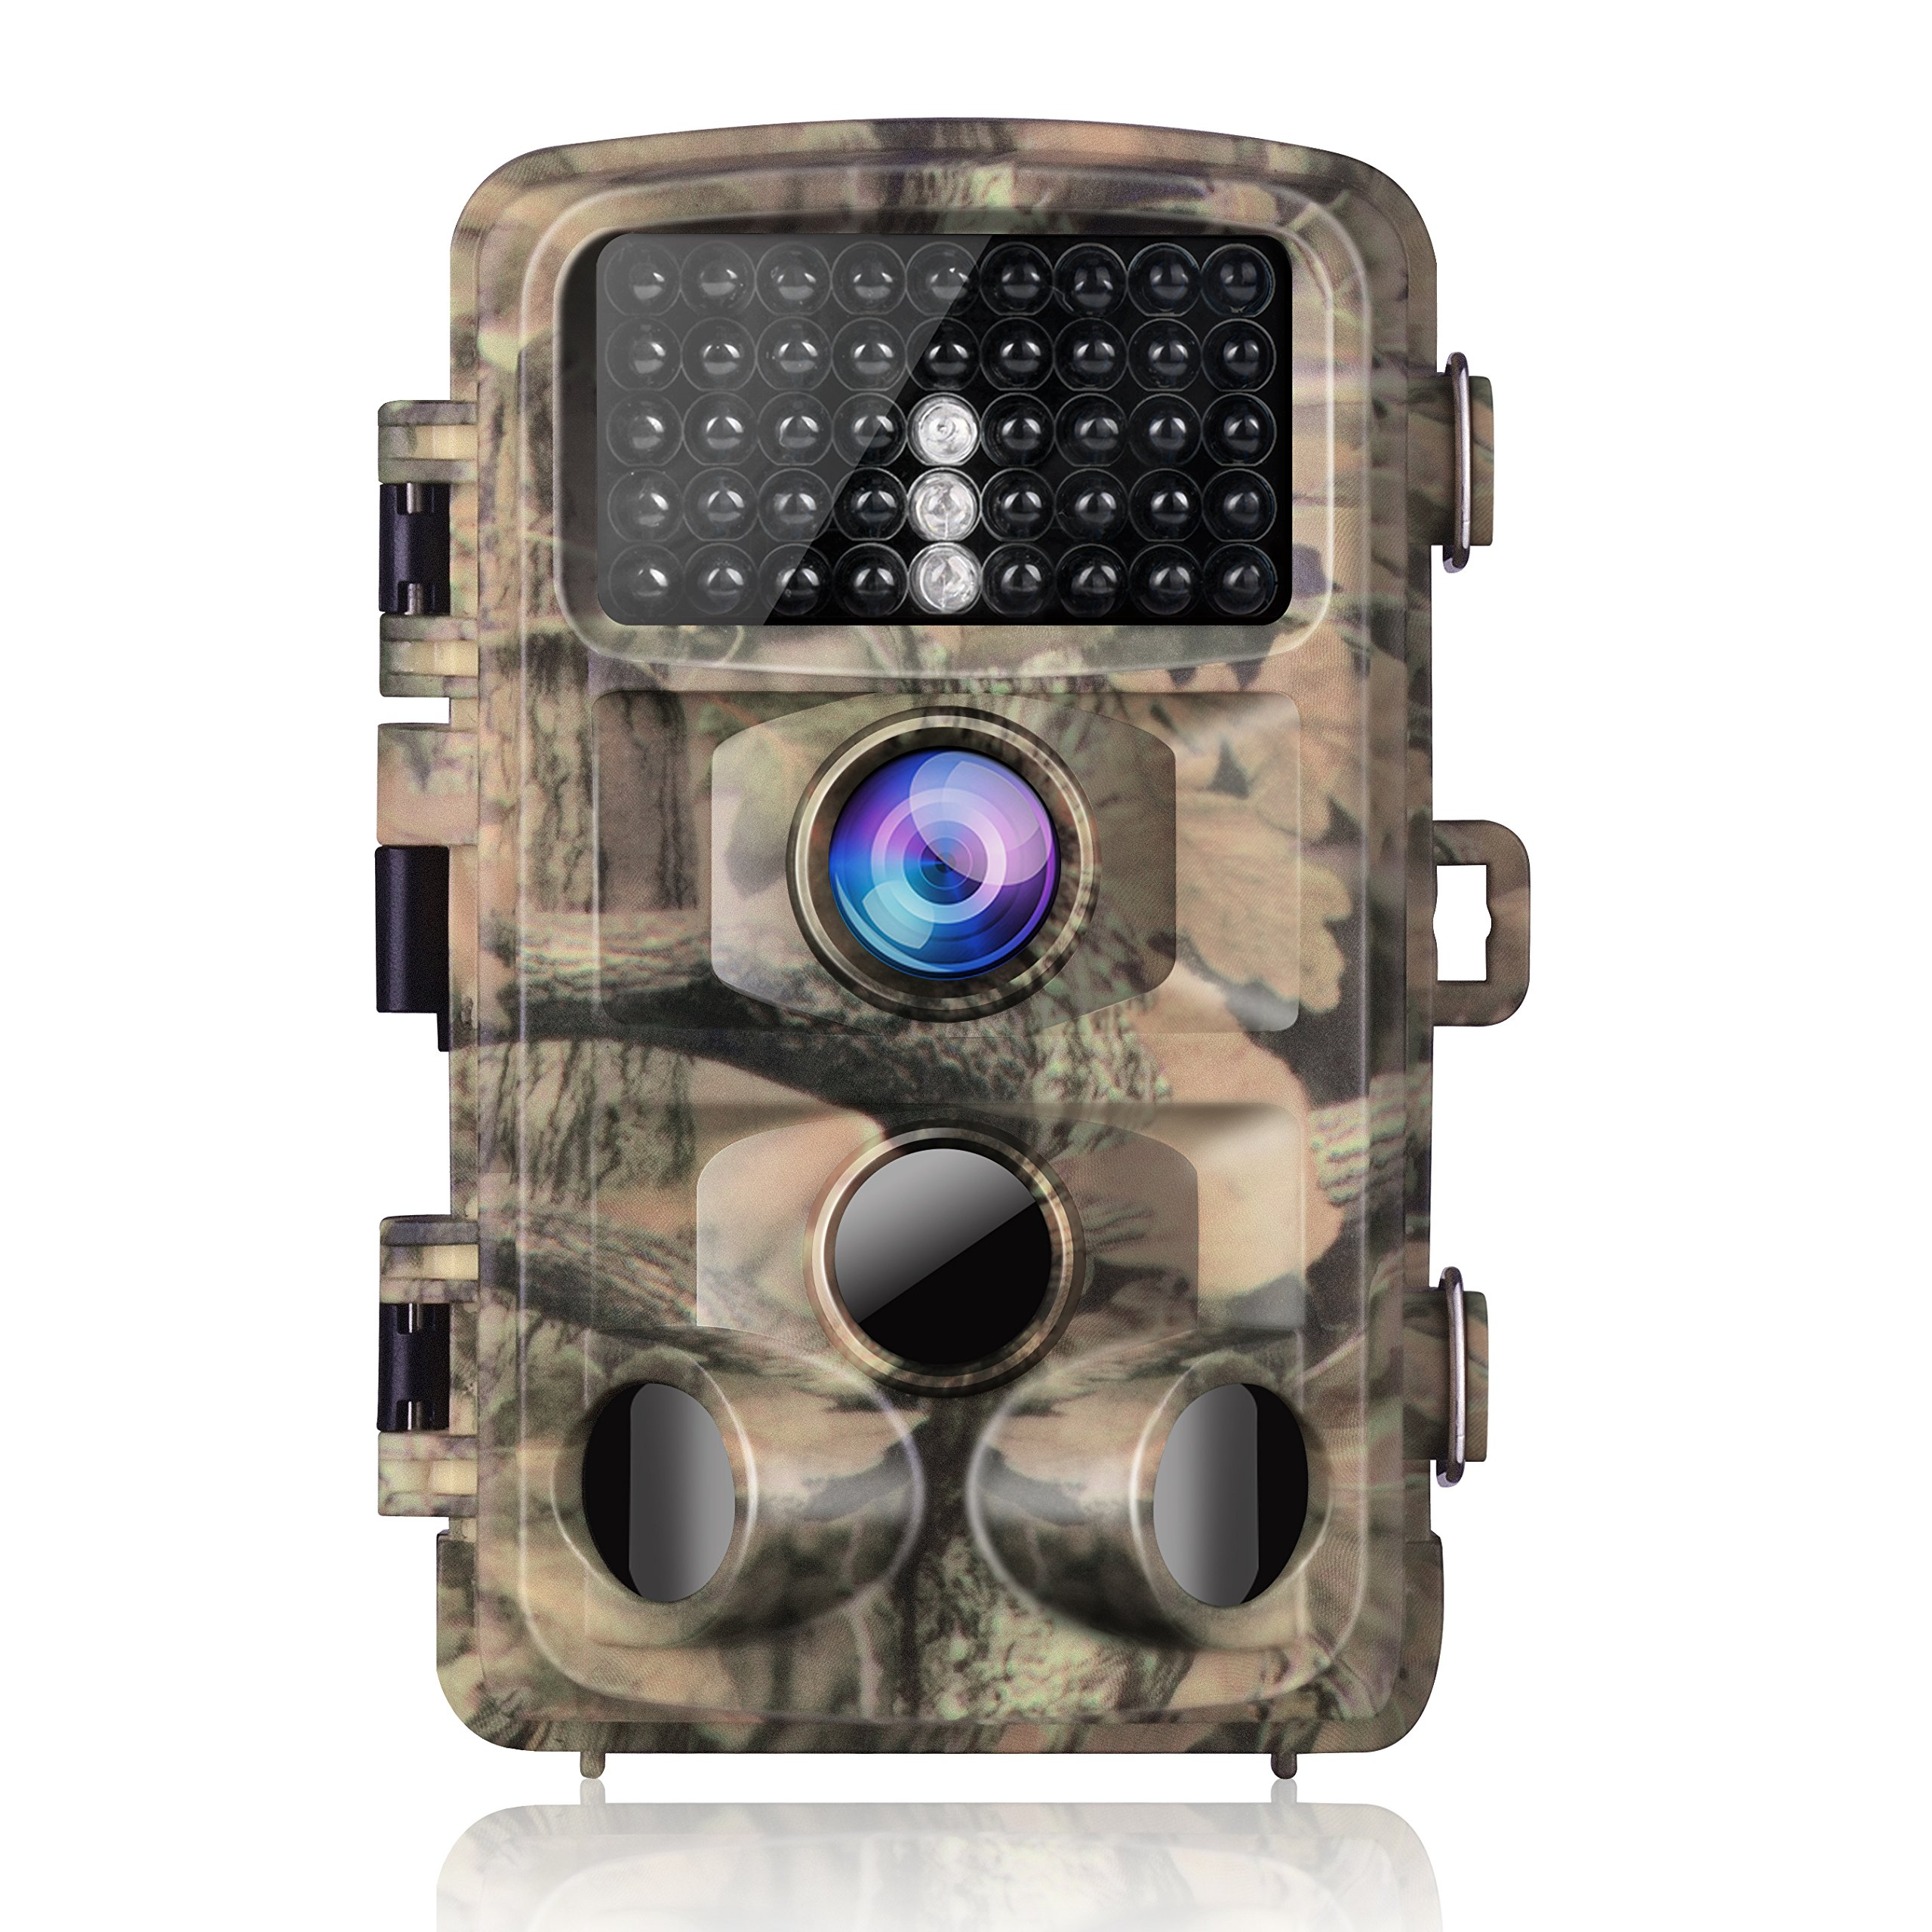 "Campark Trail Game Camera 14MP 1080P Waterproof Hunting Scouting Cam for Wildlife Monitoring with 120°Detecting Range Motion Activated Night Vision 2.4"" LCD IR LEDs by Campark"